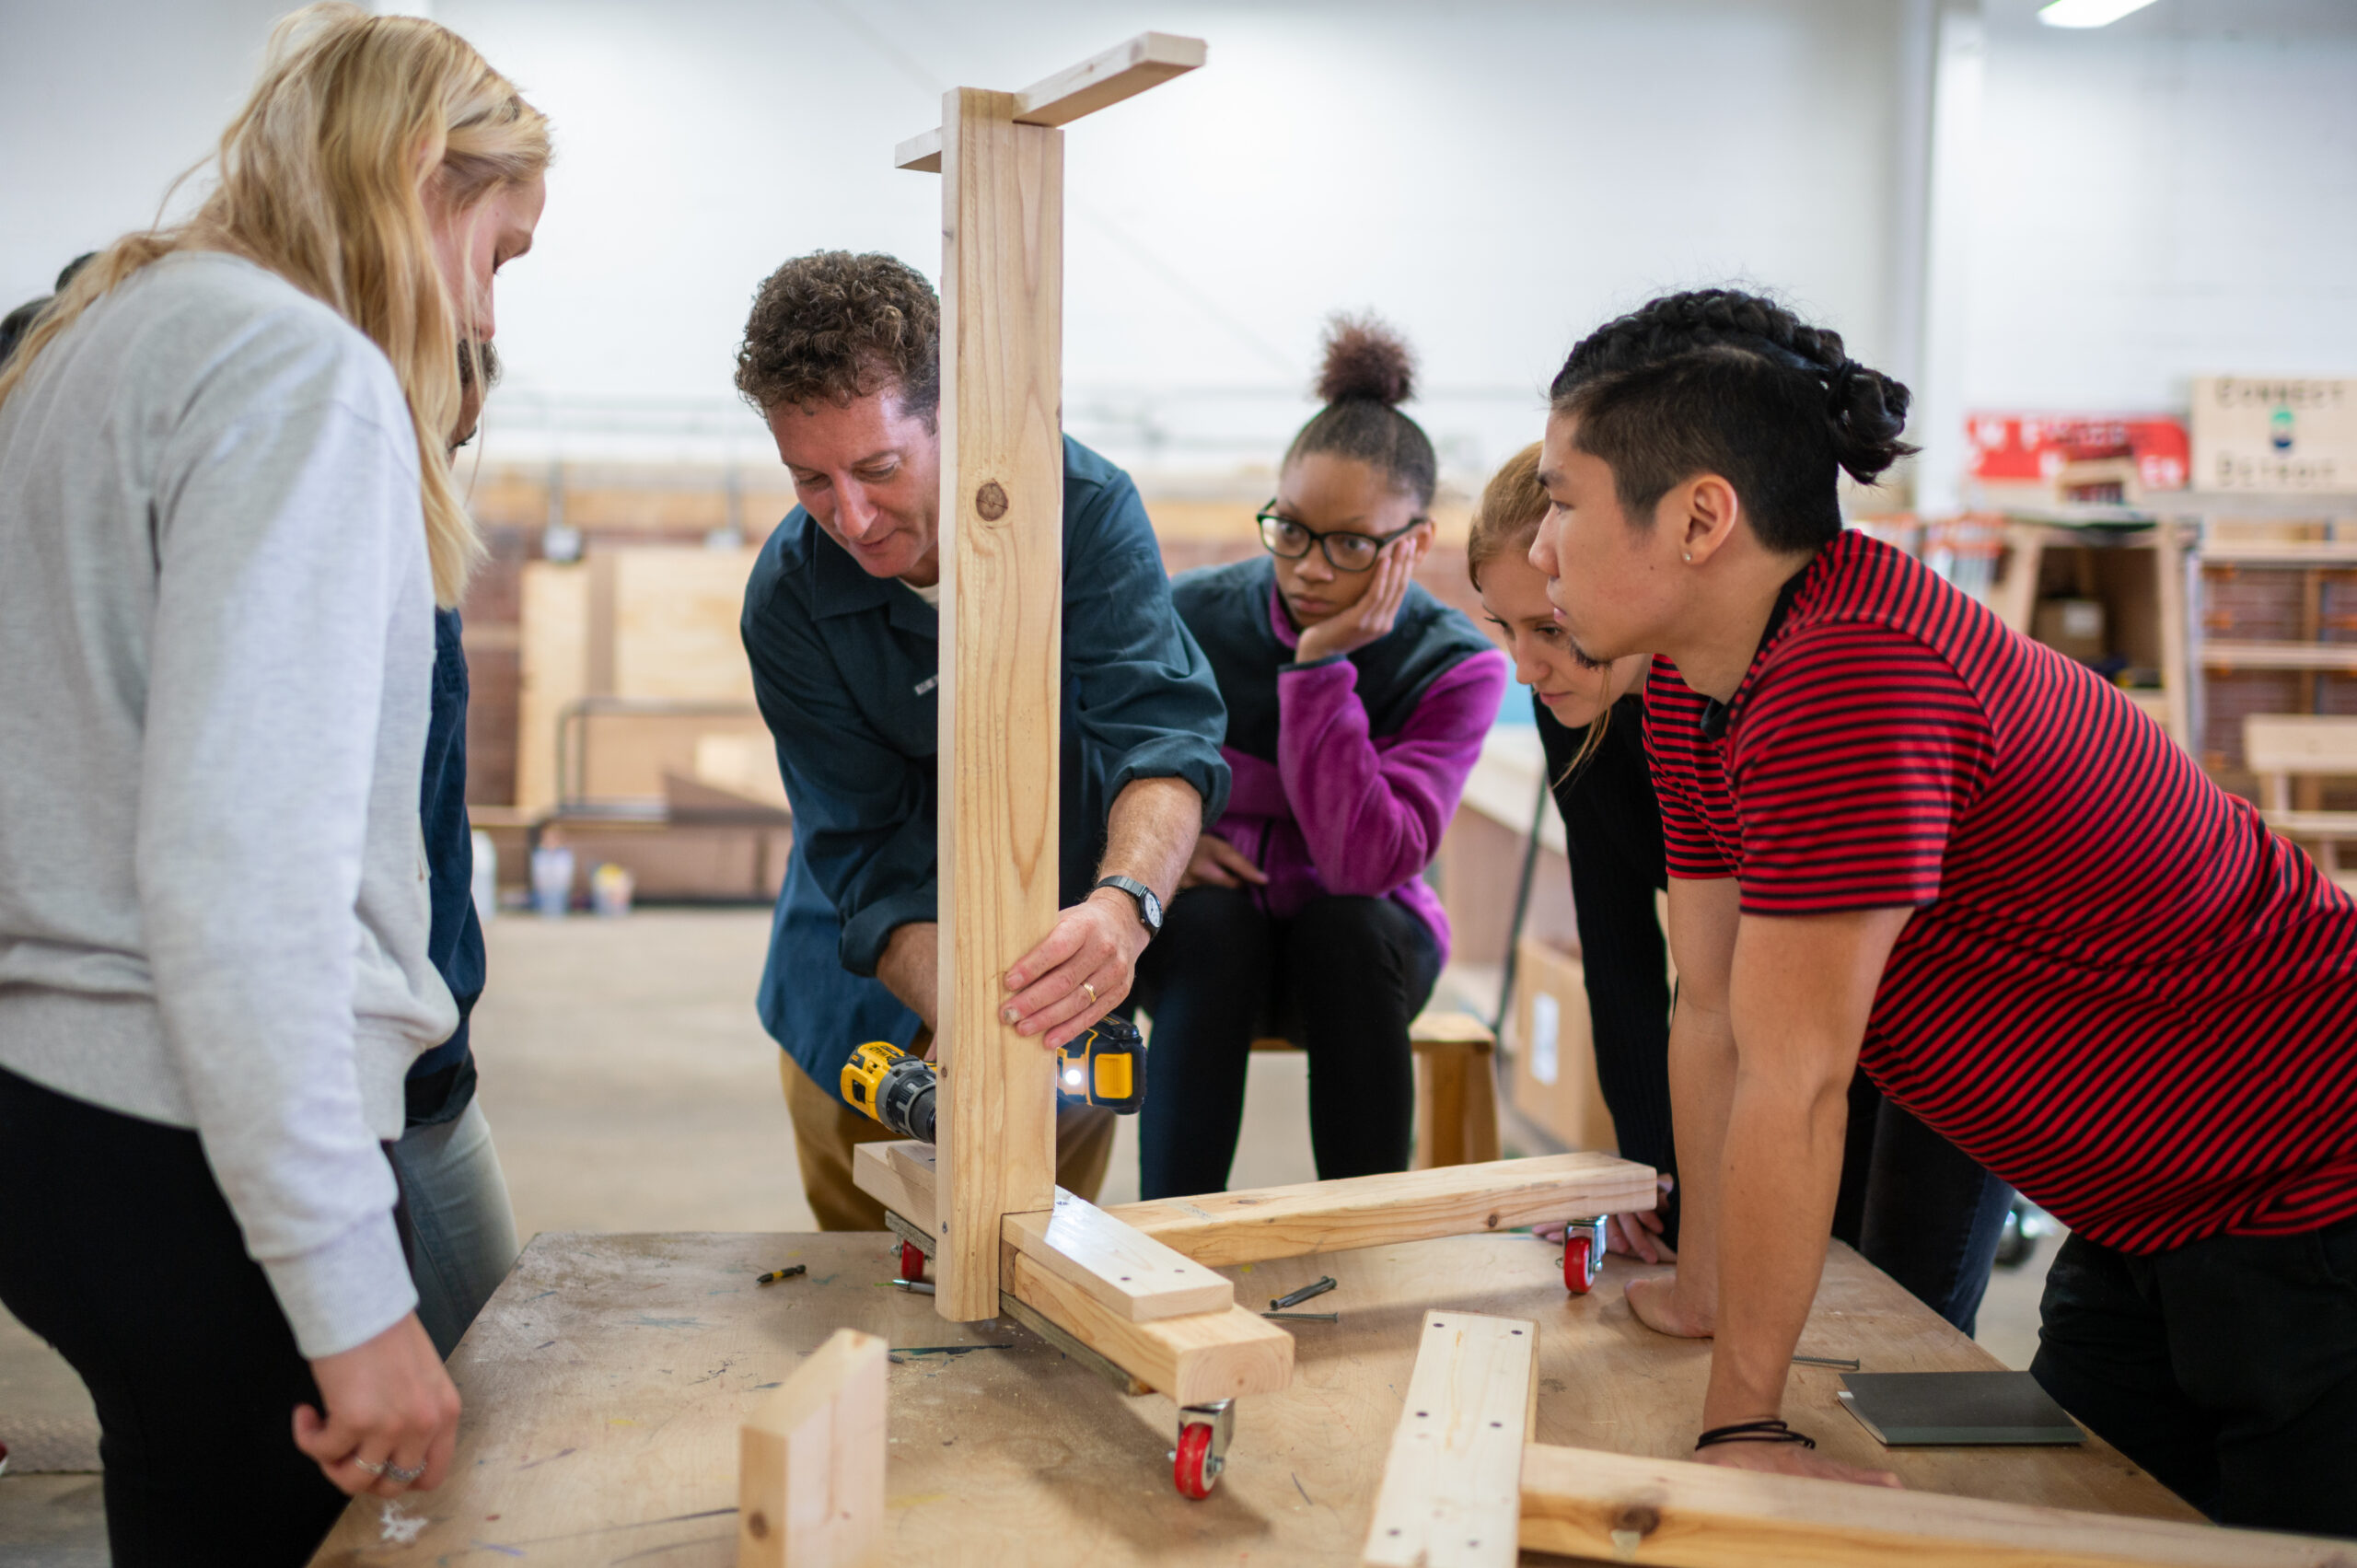 Nick Tobier works with students on hands-on projects at Brightmoor. Image credit: Eric Bronson, Michigan Photography